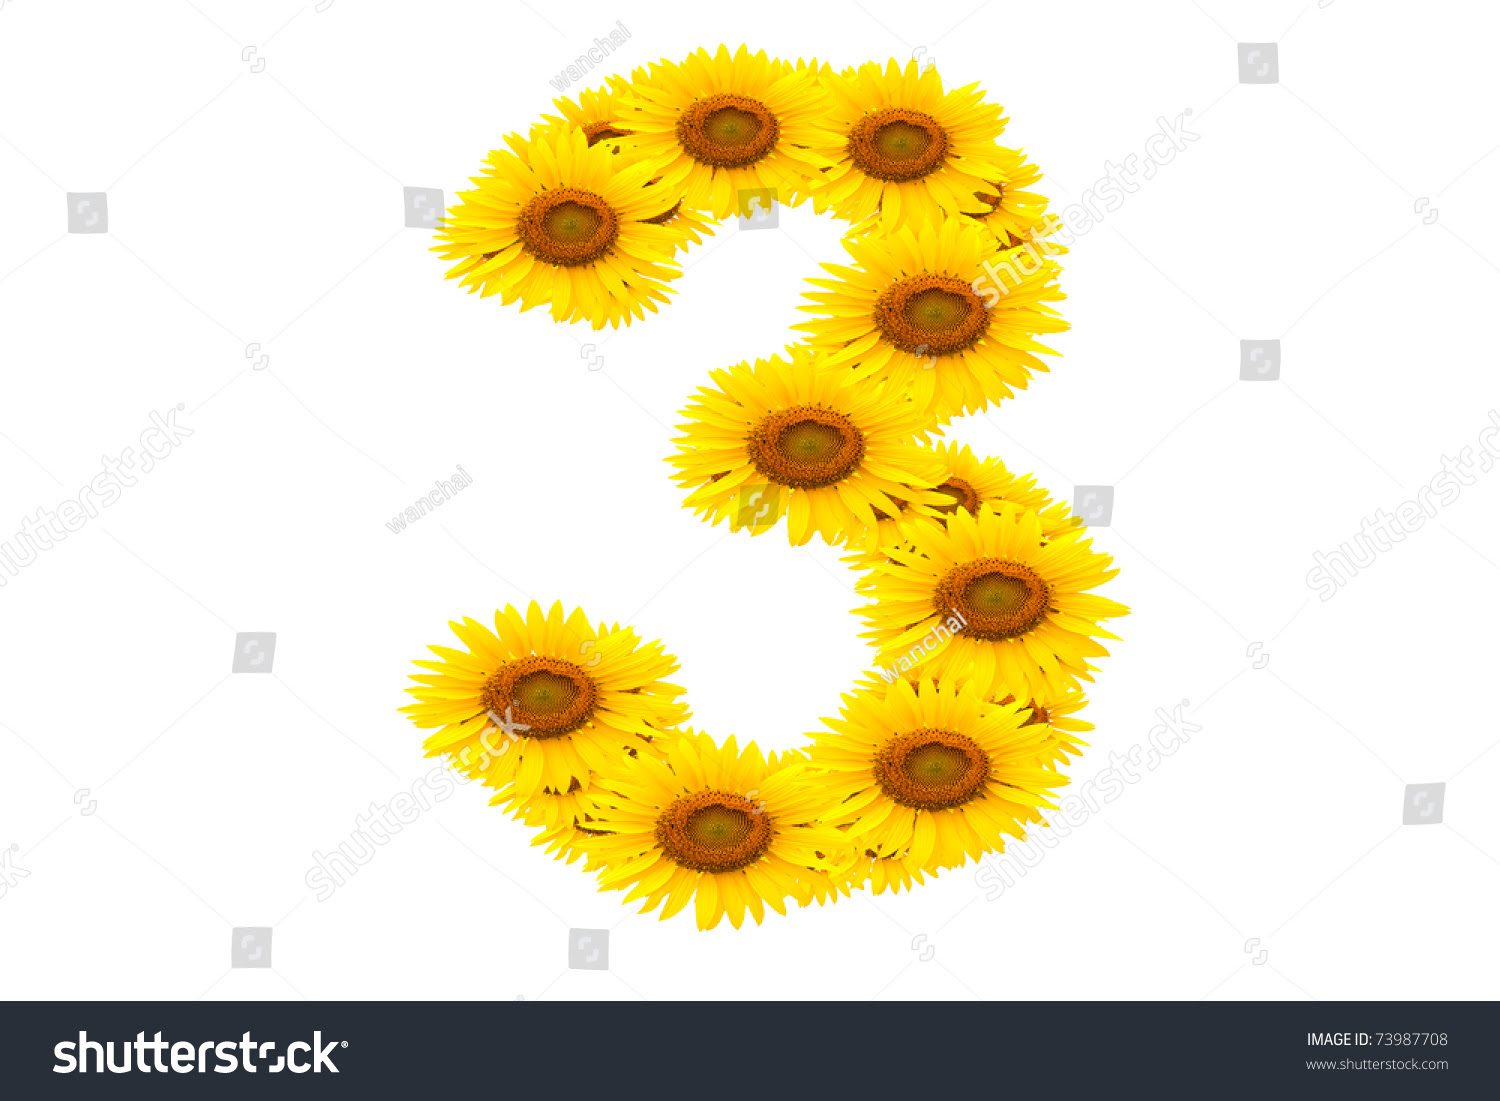 Number 3, Sunflower Isolate On White Background Stock ...